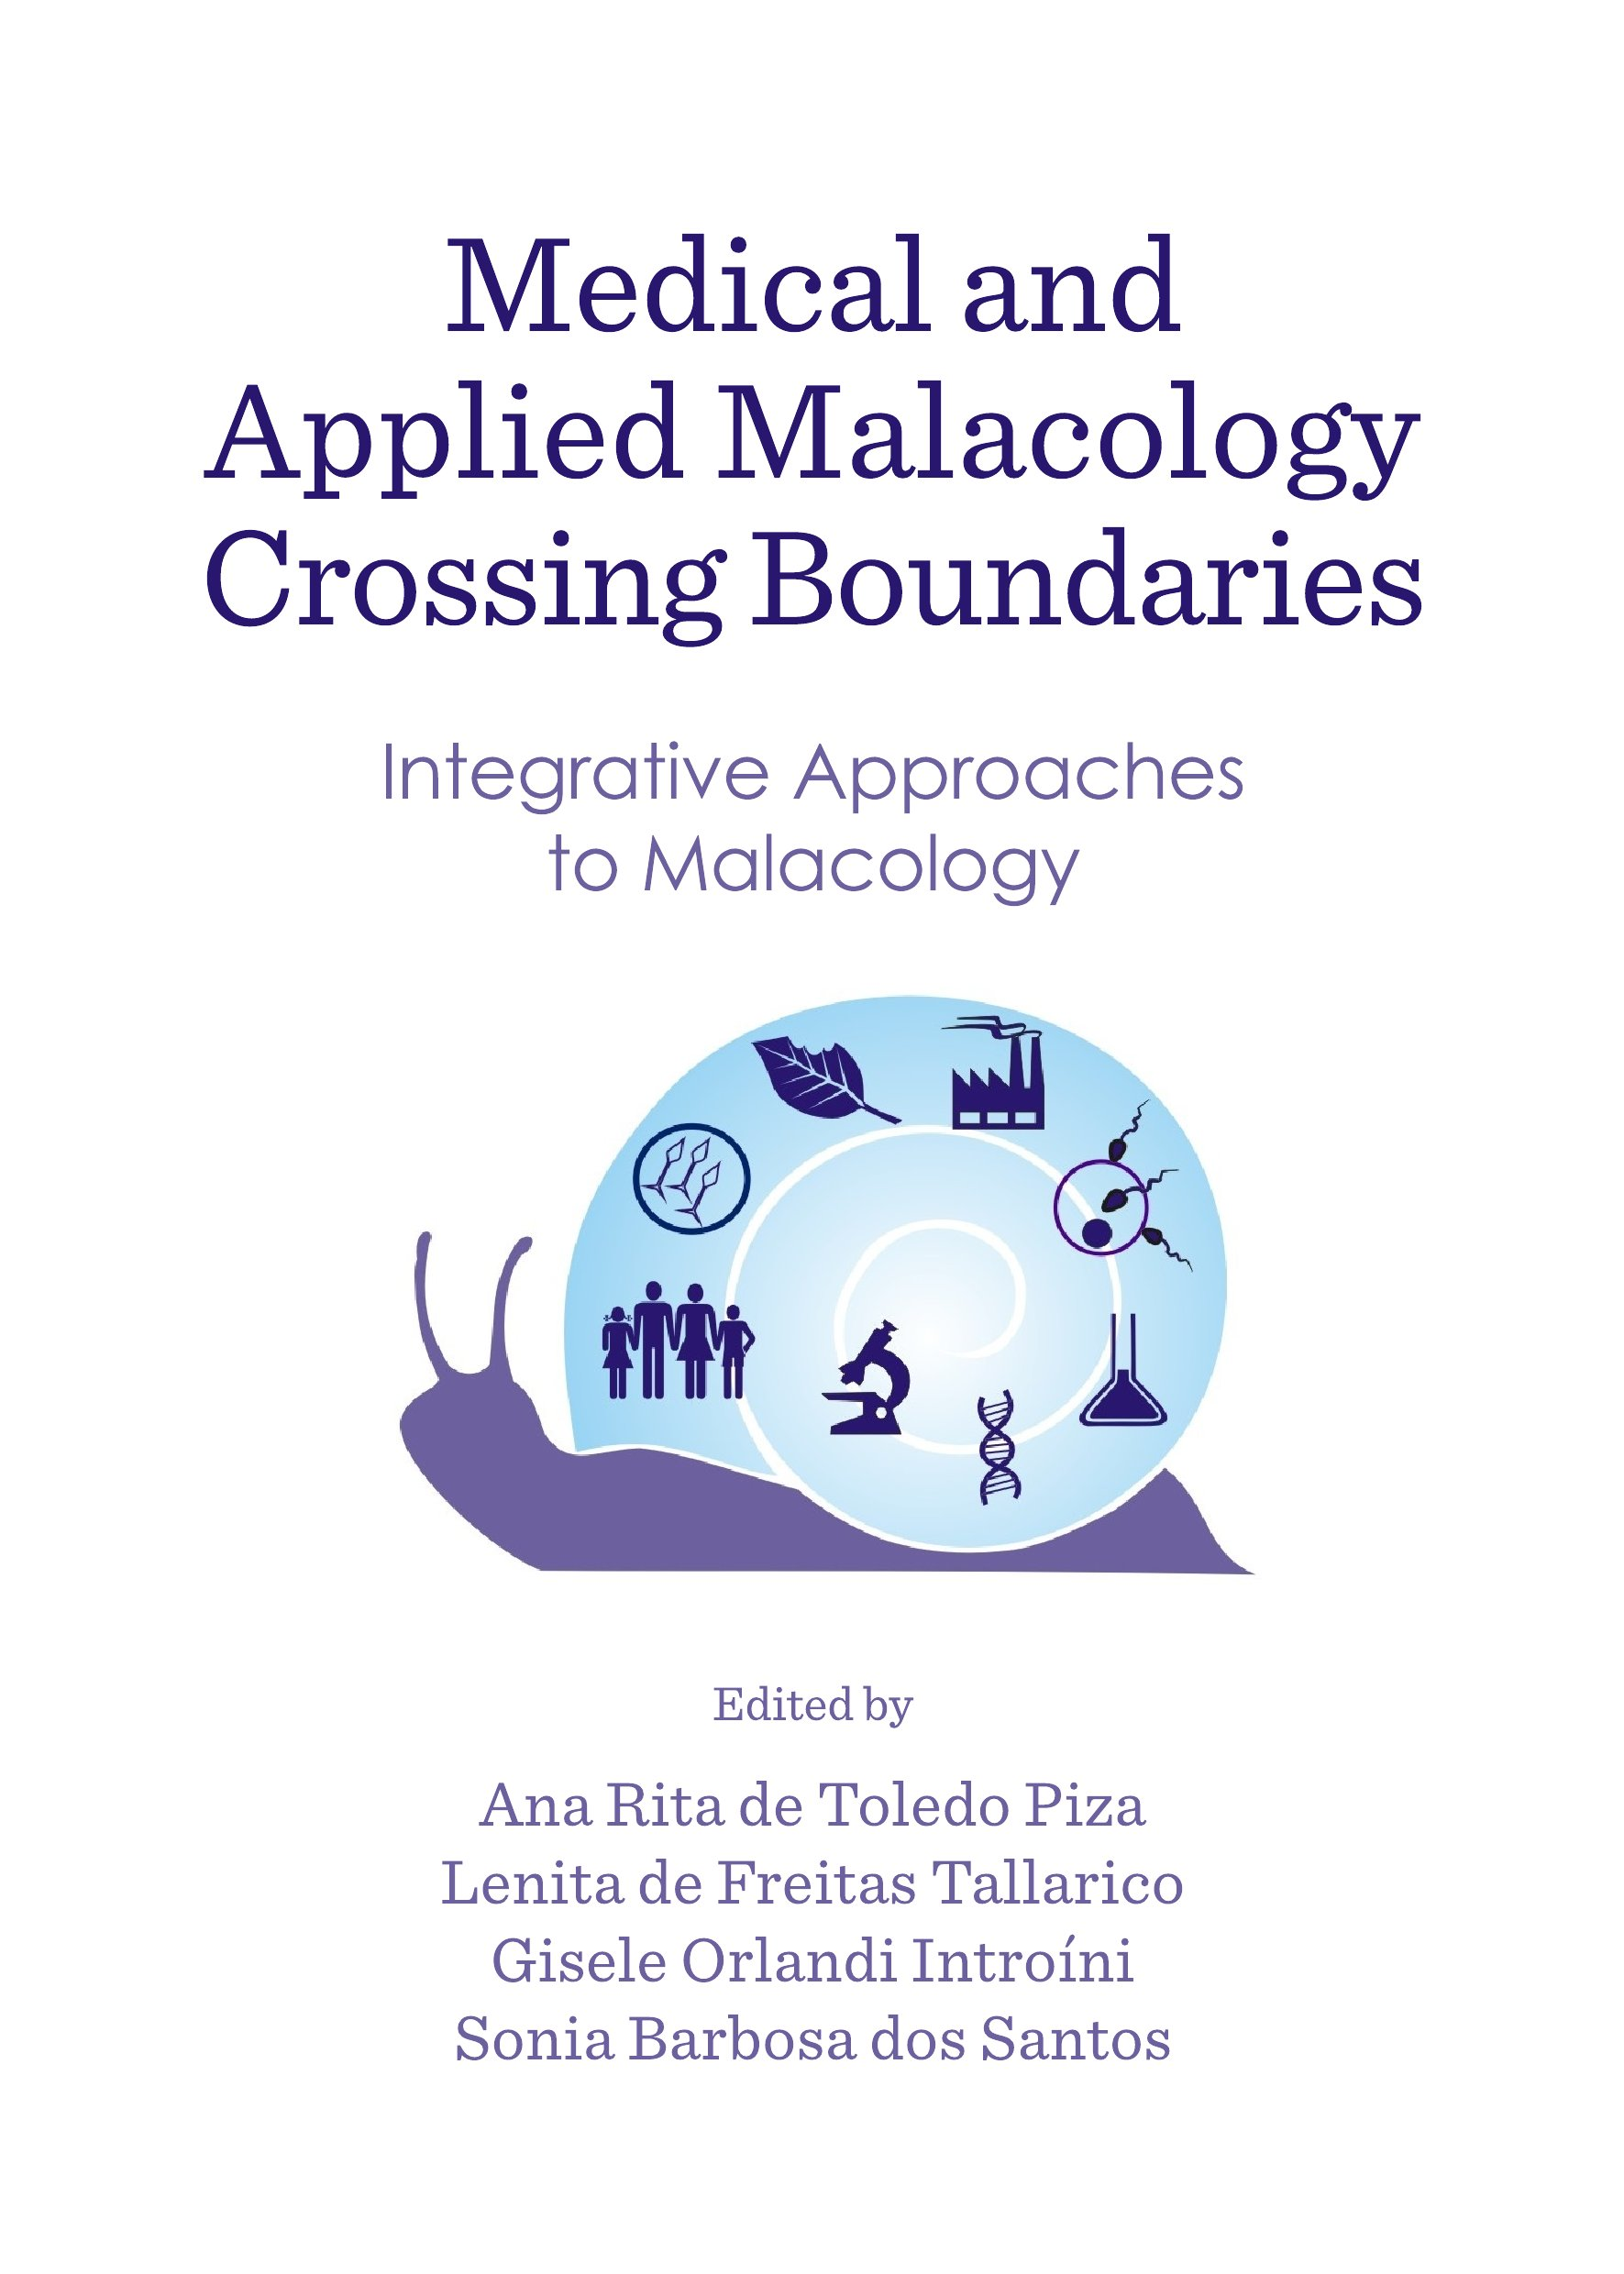 Medical and Applied Malacology Crossing Boundaries: Integrative Approaches to Malacology